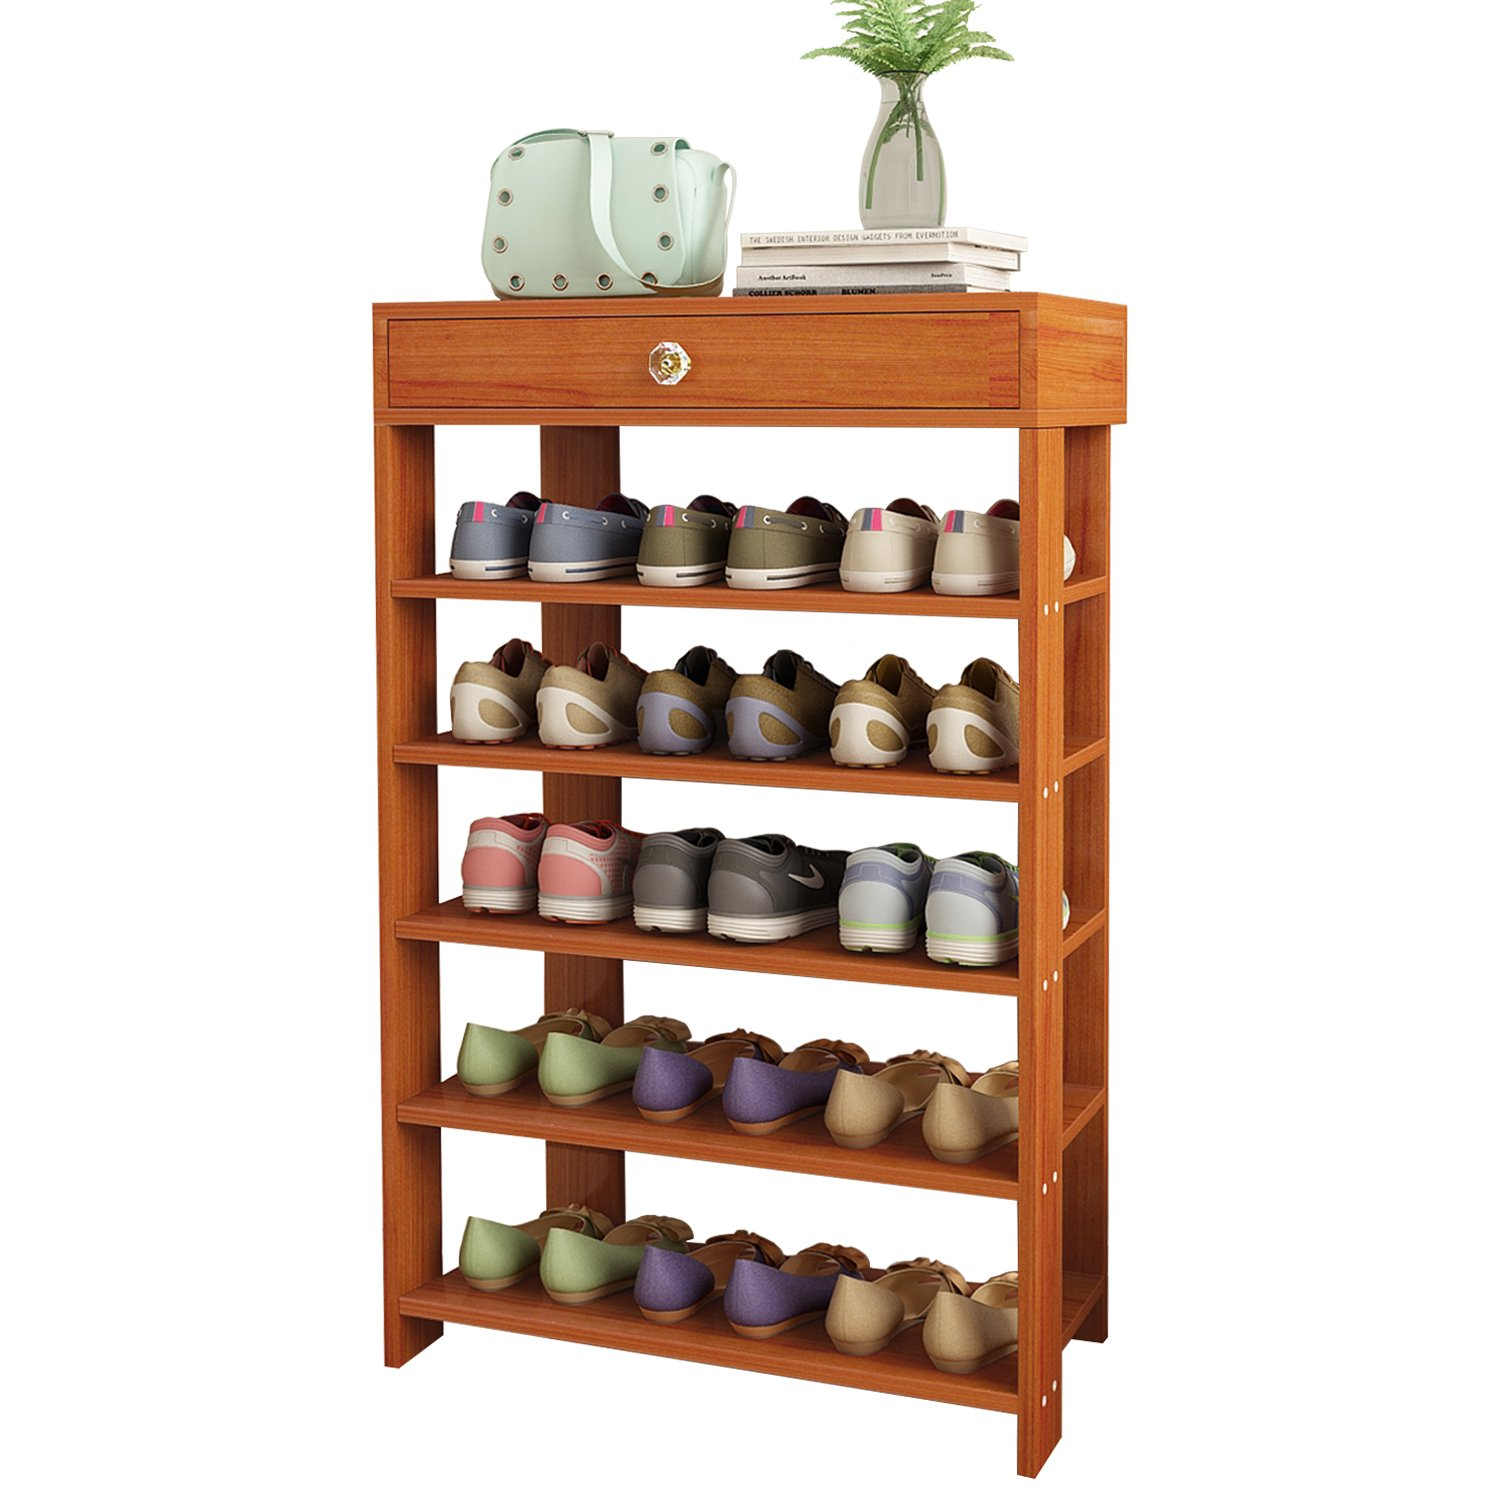 Jerry & Maggie - 5 Tier Wood MDF Solid Shoe Rack 1 Large Top Draw/Shoe Storage Shelves Free Standing Flat Shoe Racks Classic Style - Multi Function Shelf Organizer - Natural Wood Tone